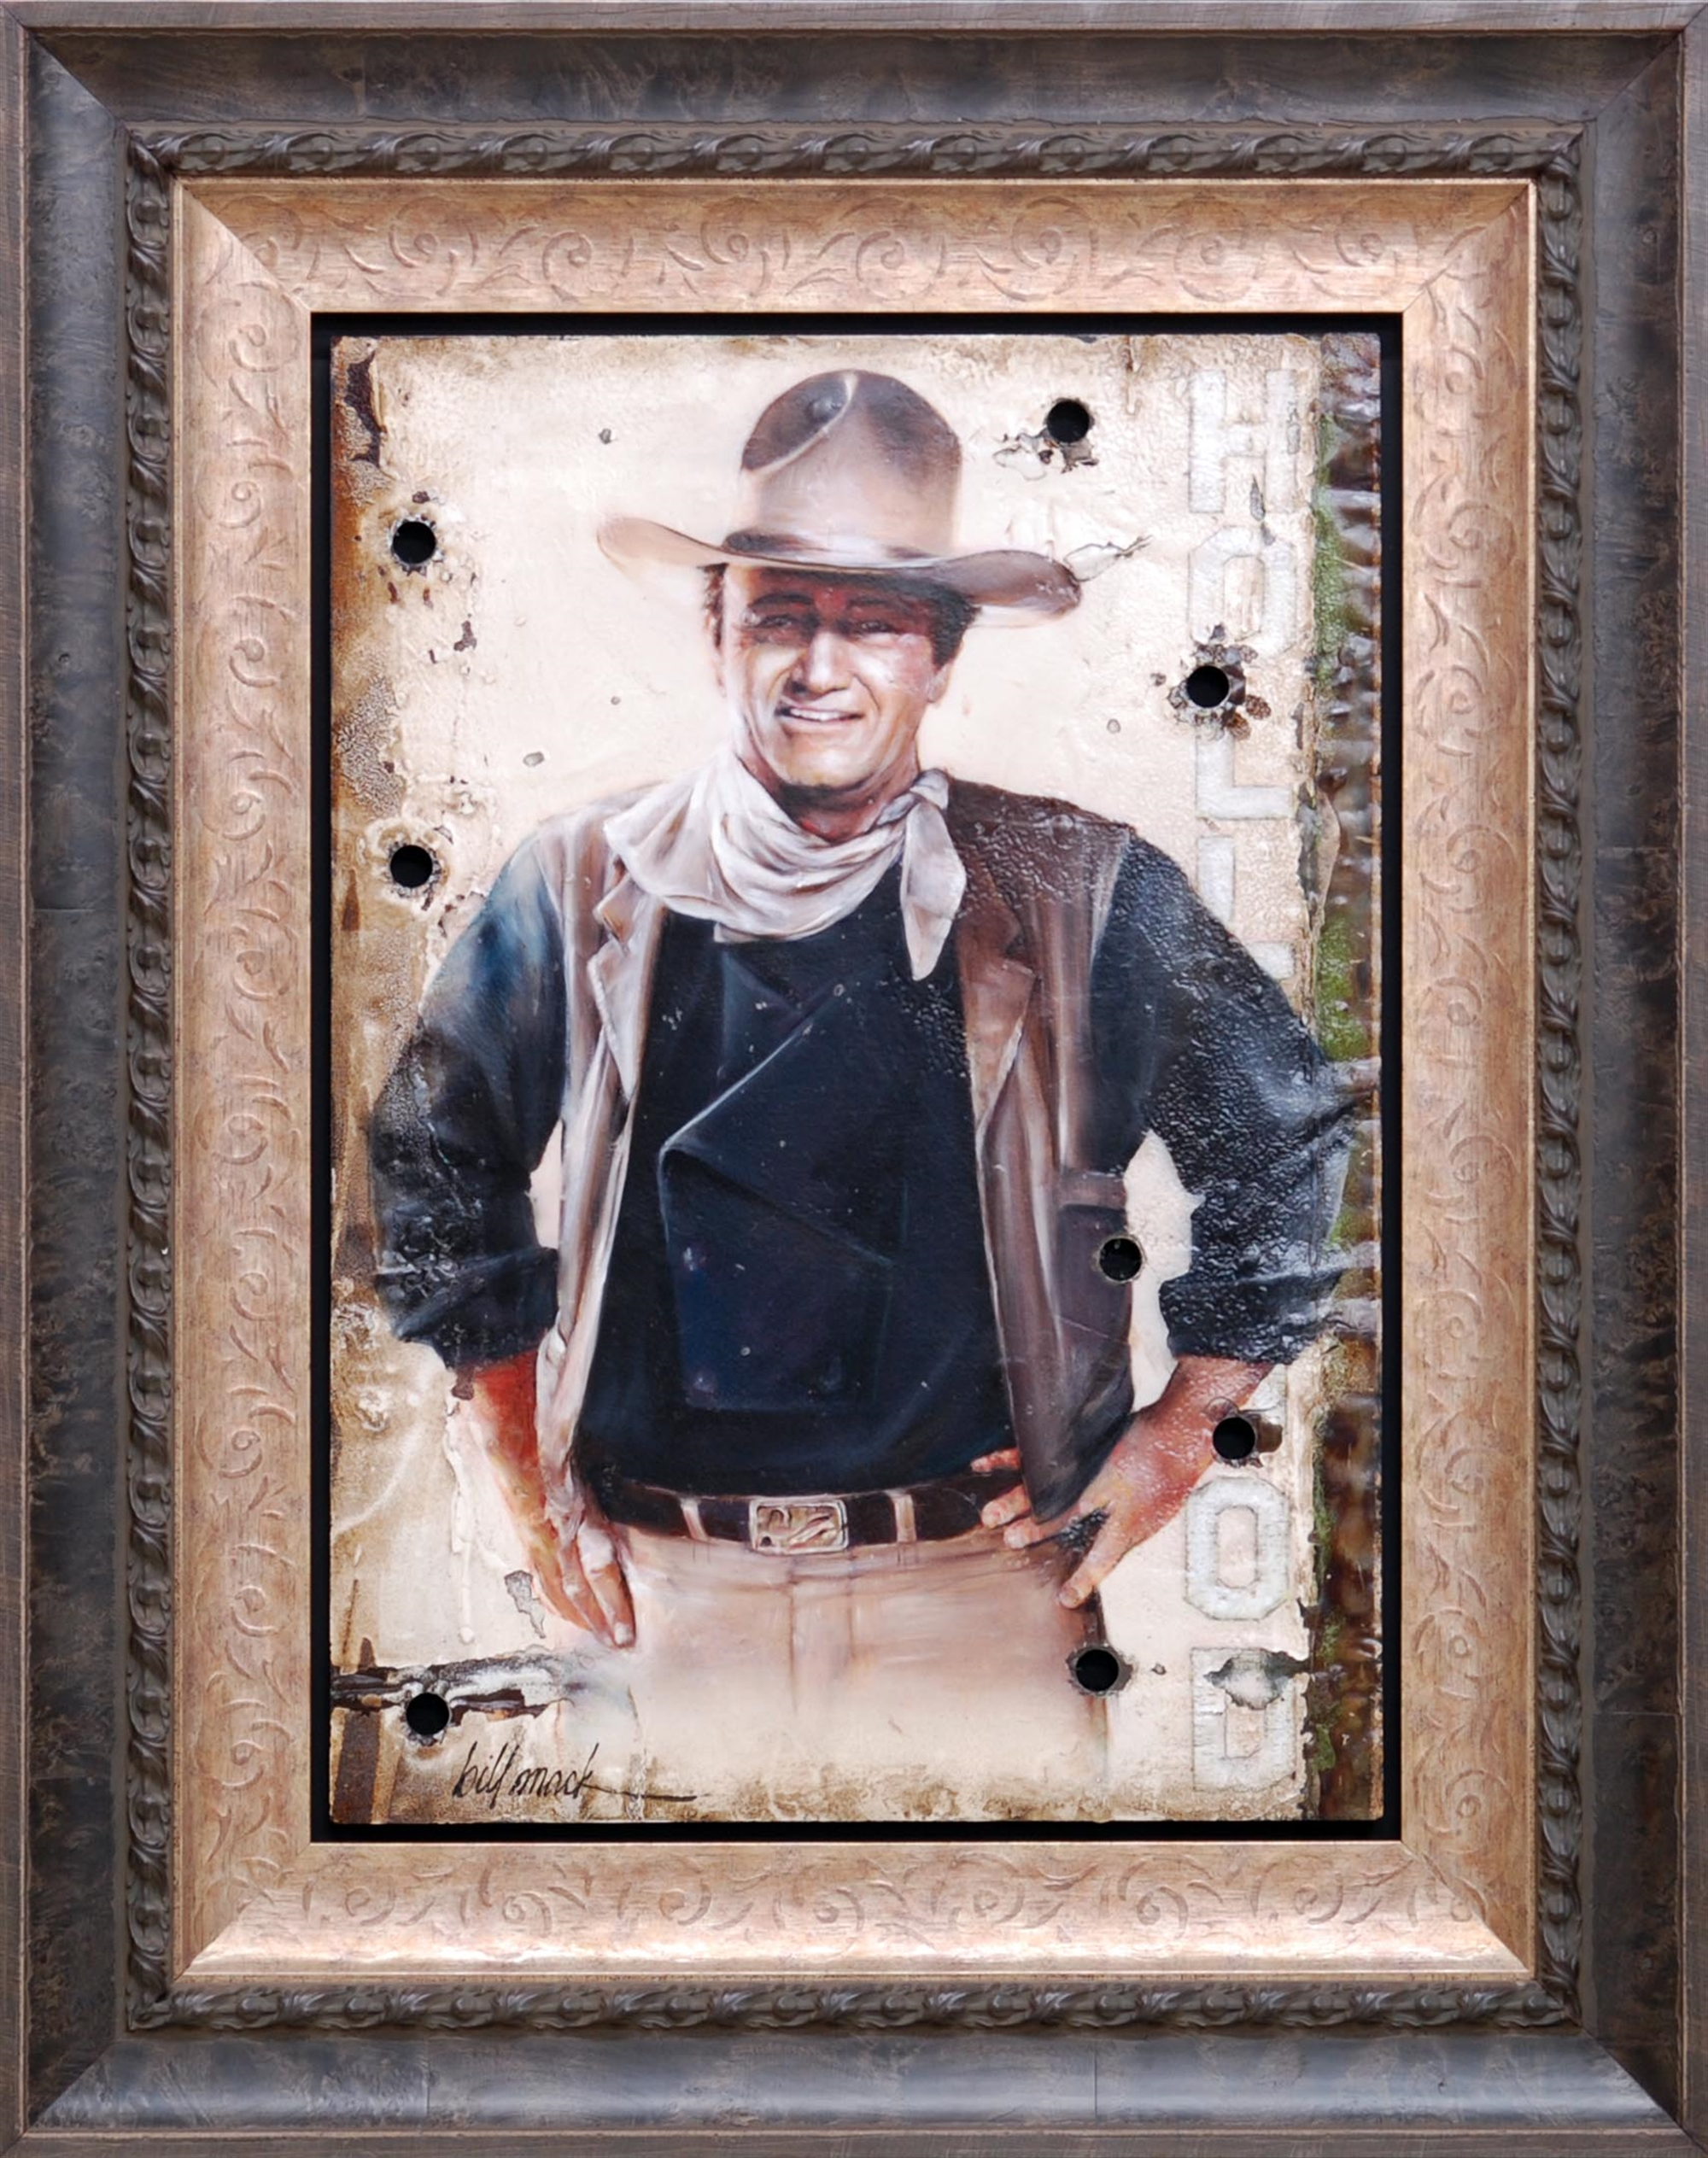 John Wayne by Bill Mack